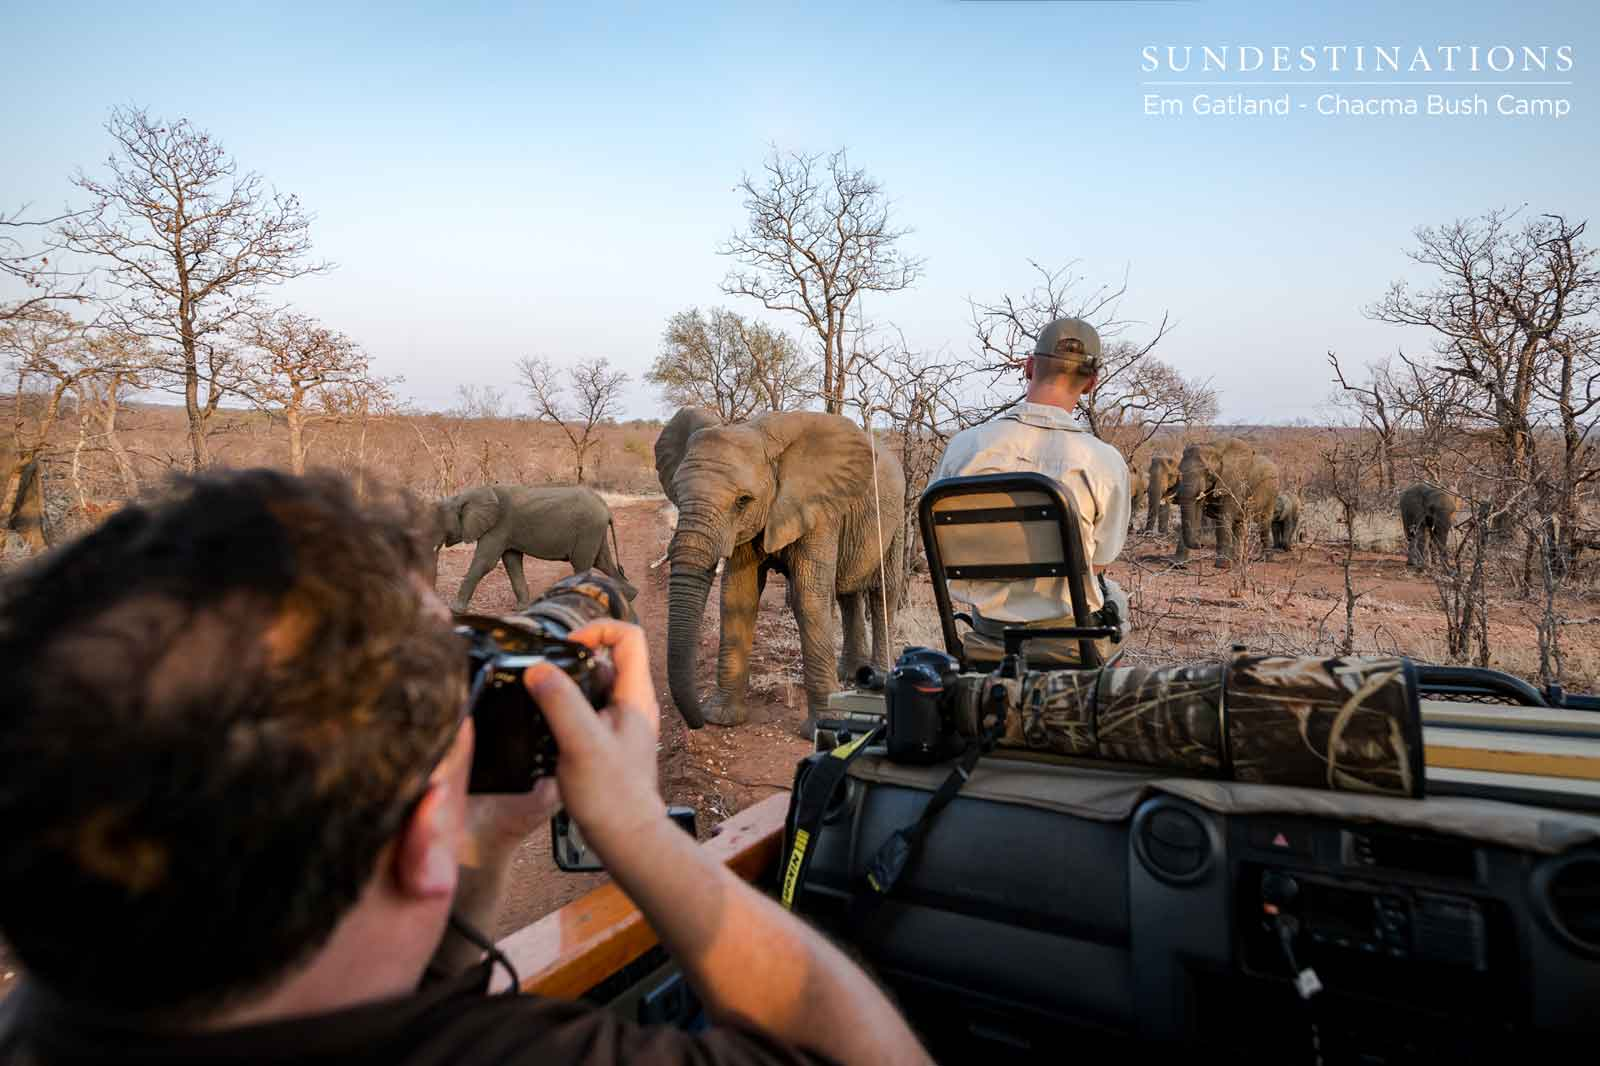 Photographing Elephants on Game Drive